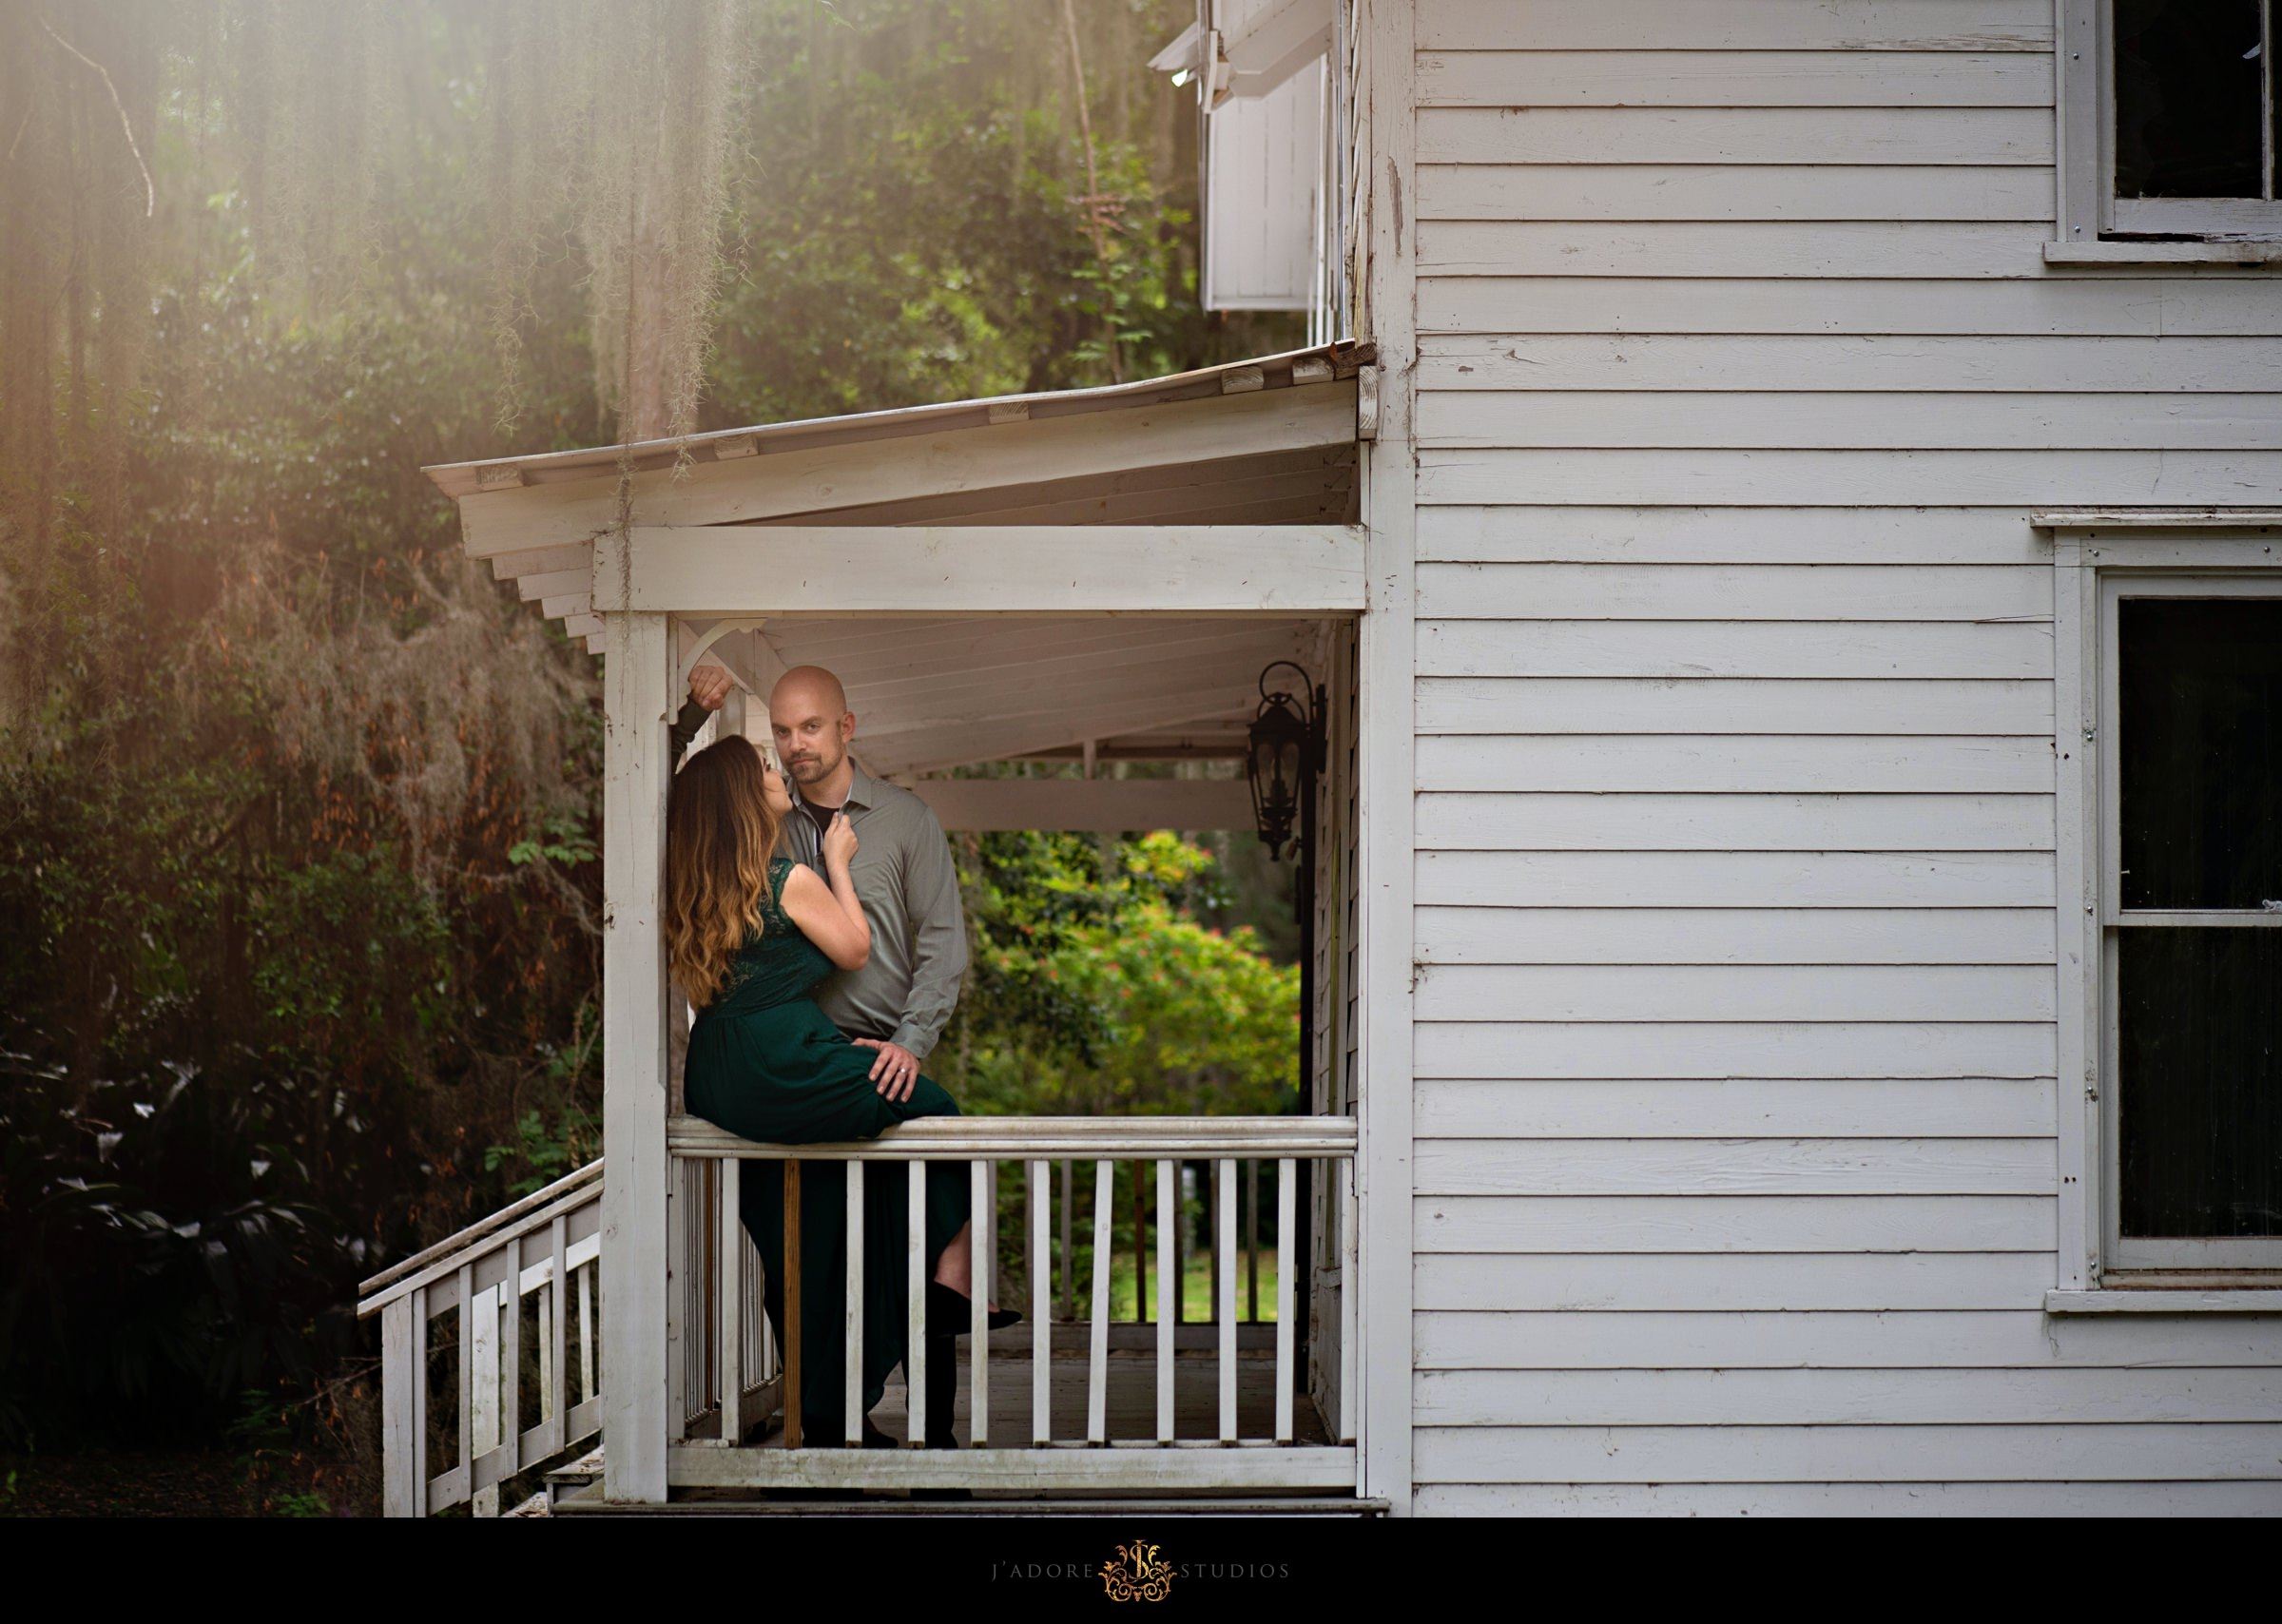 Wife hugging husband as he poses for the camera on the front porch of old house